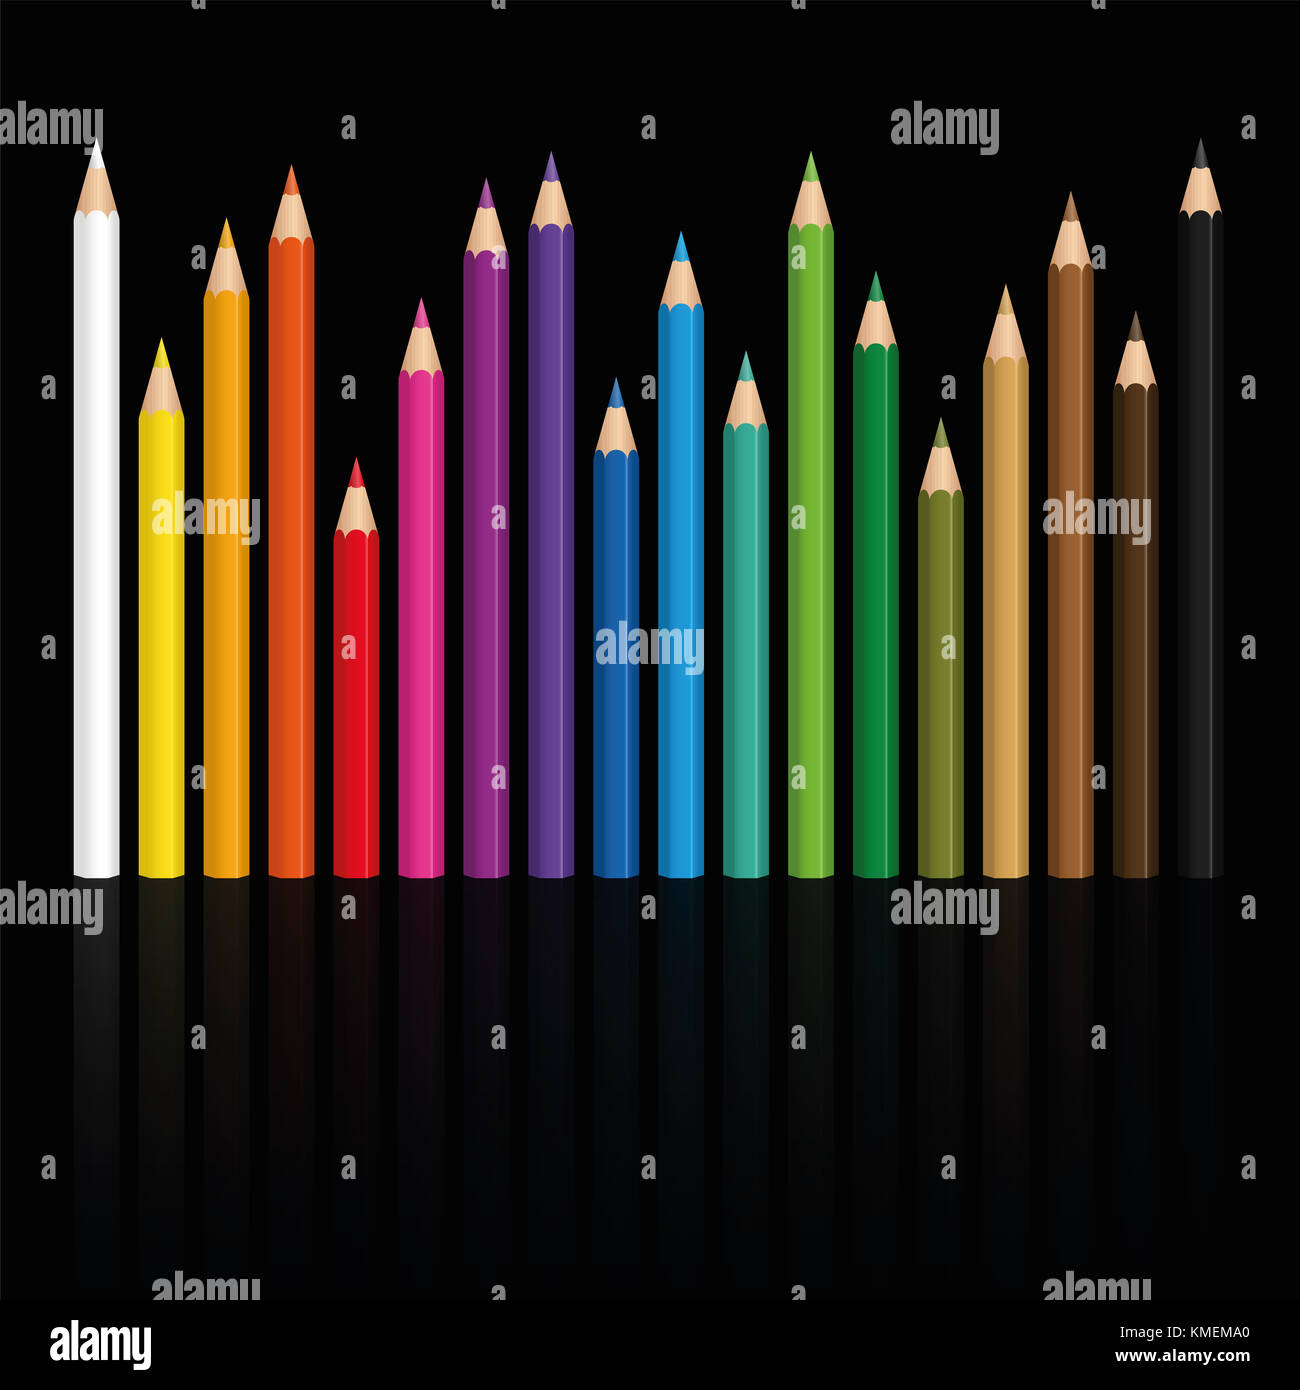 Crayons - colorful set of pencils in different lengths with wood textured tips, upright standing in a row like a - Stock Image